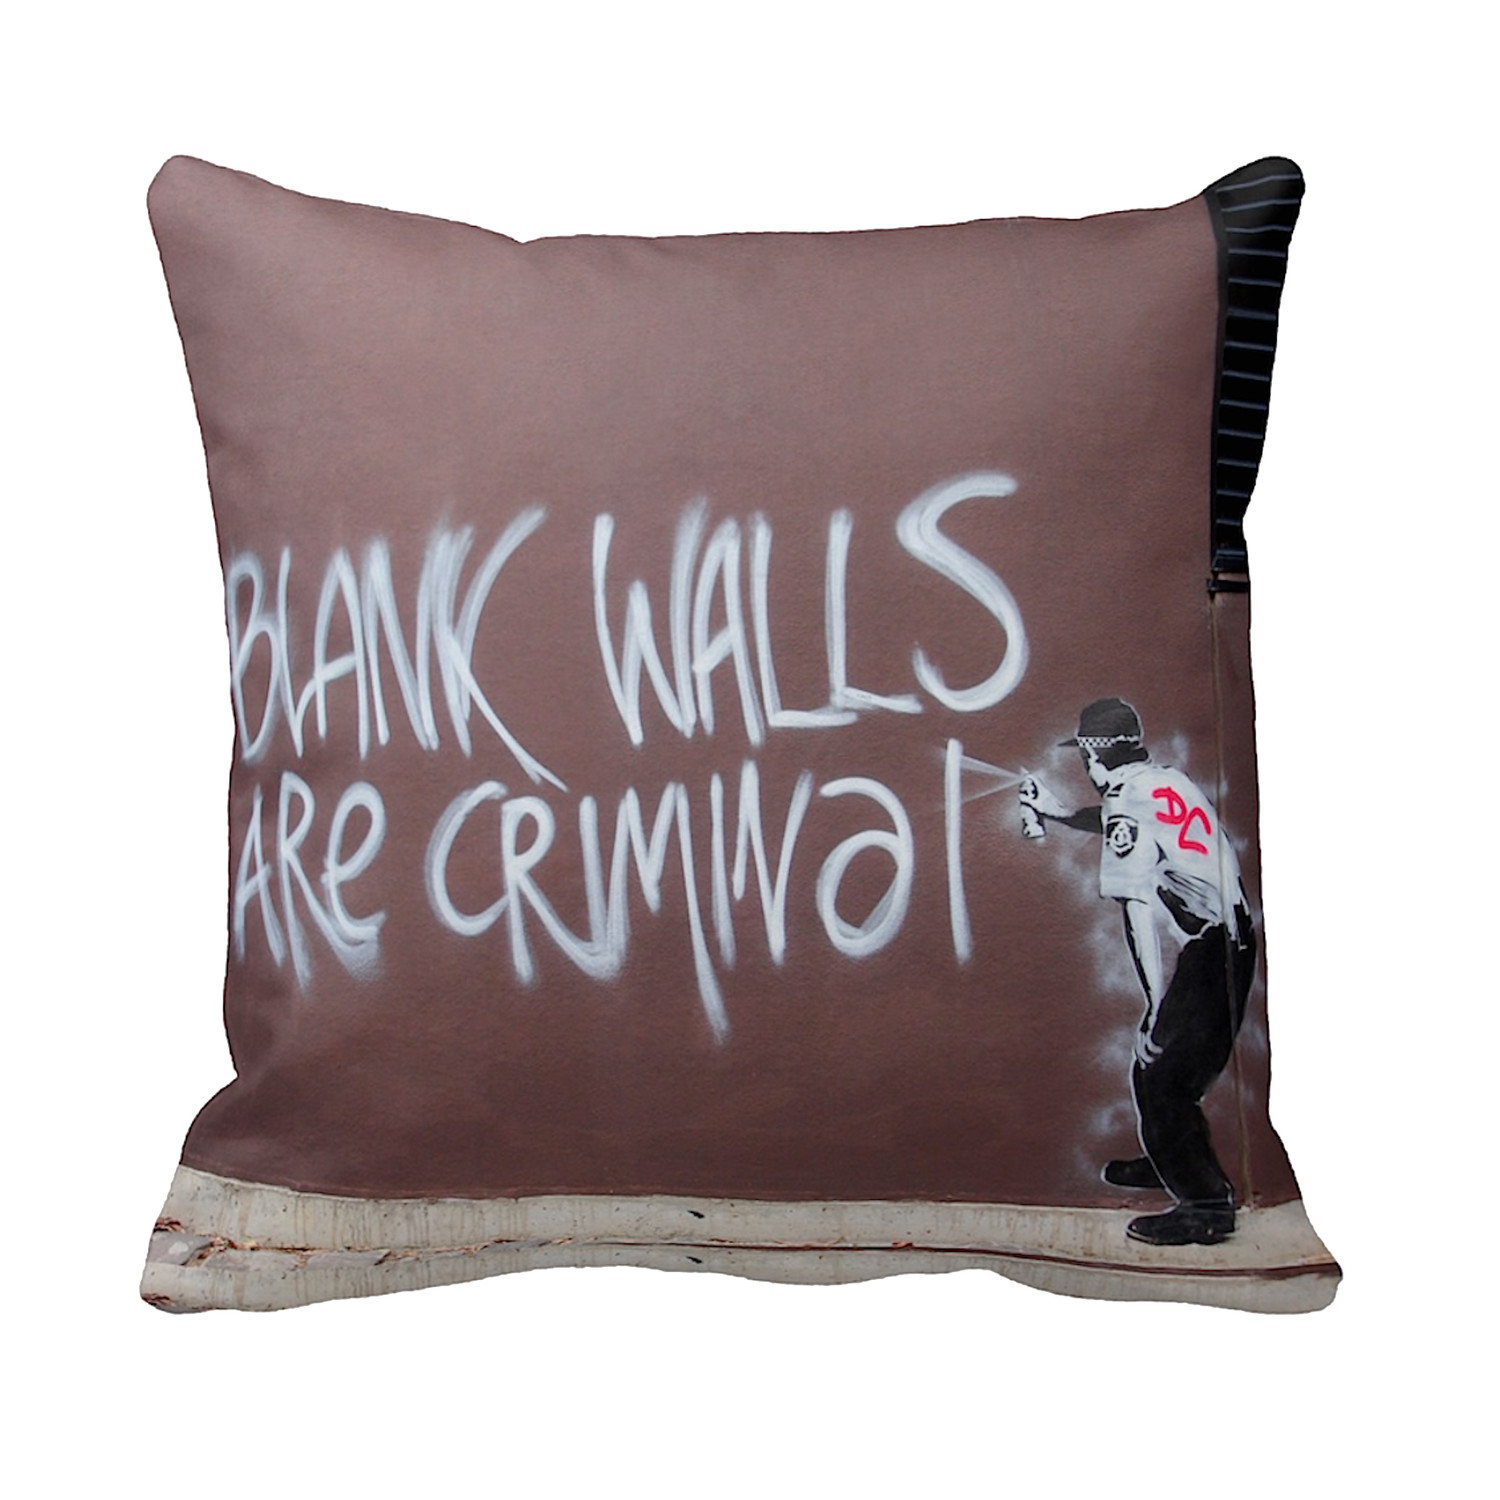 Pillows Melbourne Blank Walls Are Criminal Melbourne Banksy Pillows Touch Of Modern